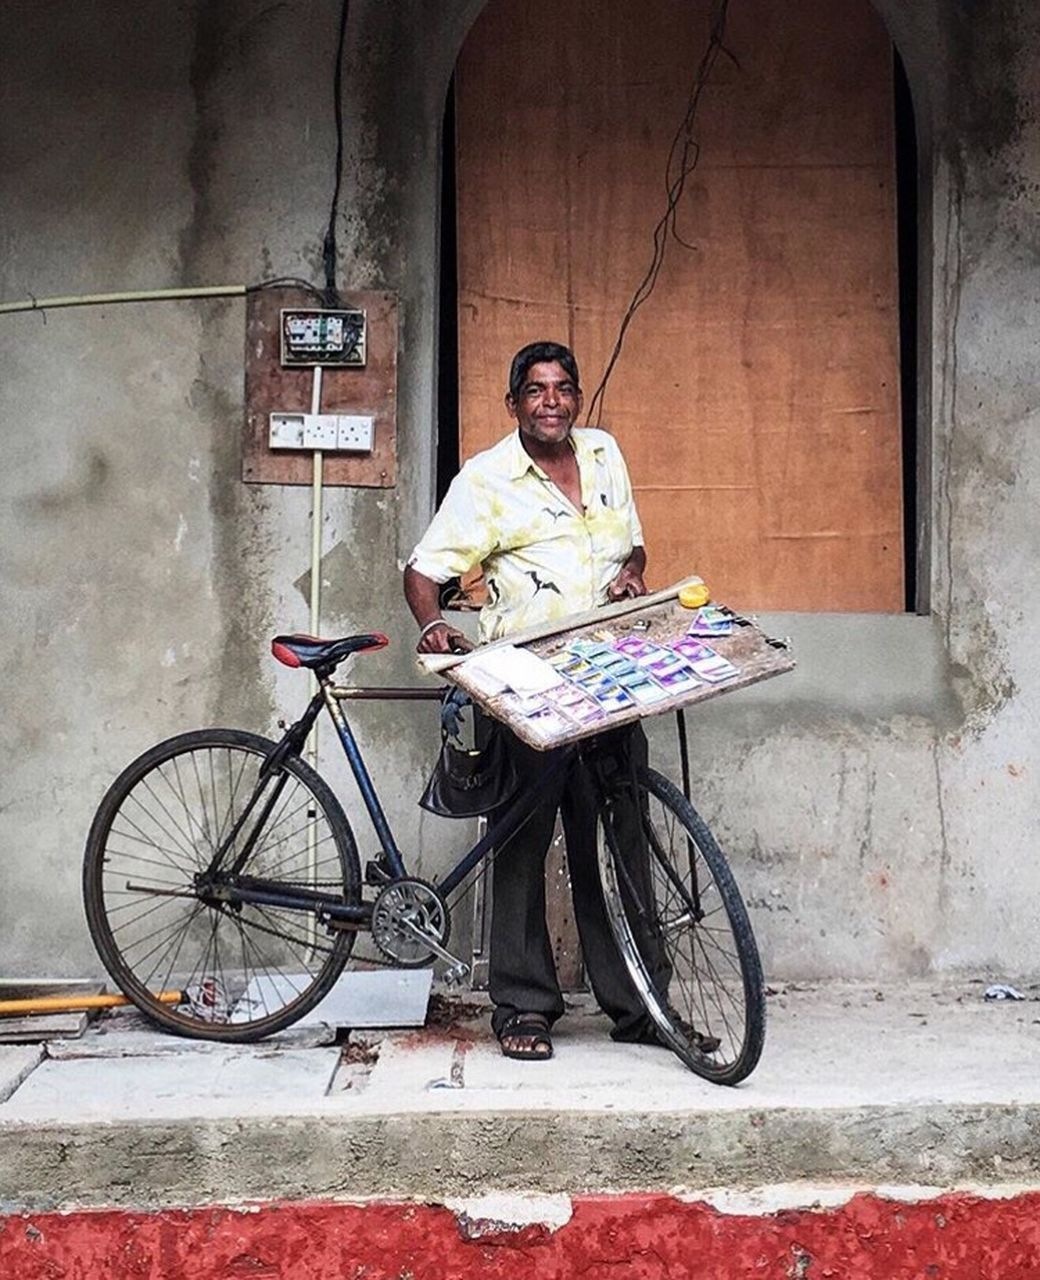 bicycle, full length, mid adult, mode of transport, transportation, one person, day, stationary, sitting, building exterior, flower, outdoors, adult, people